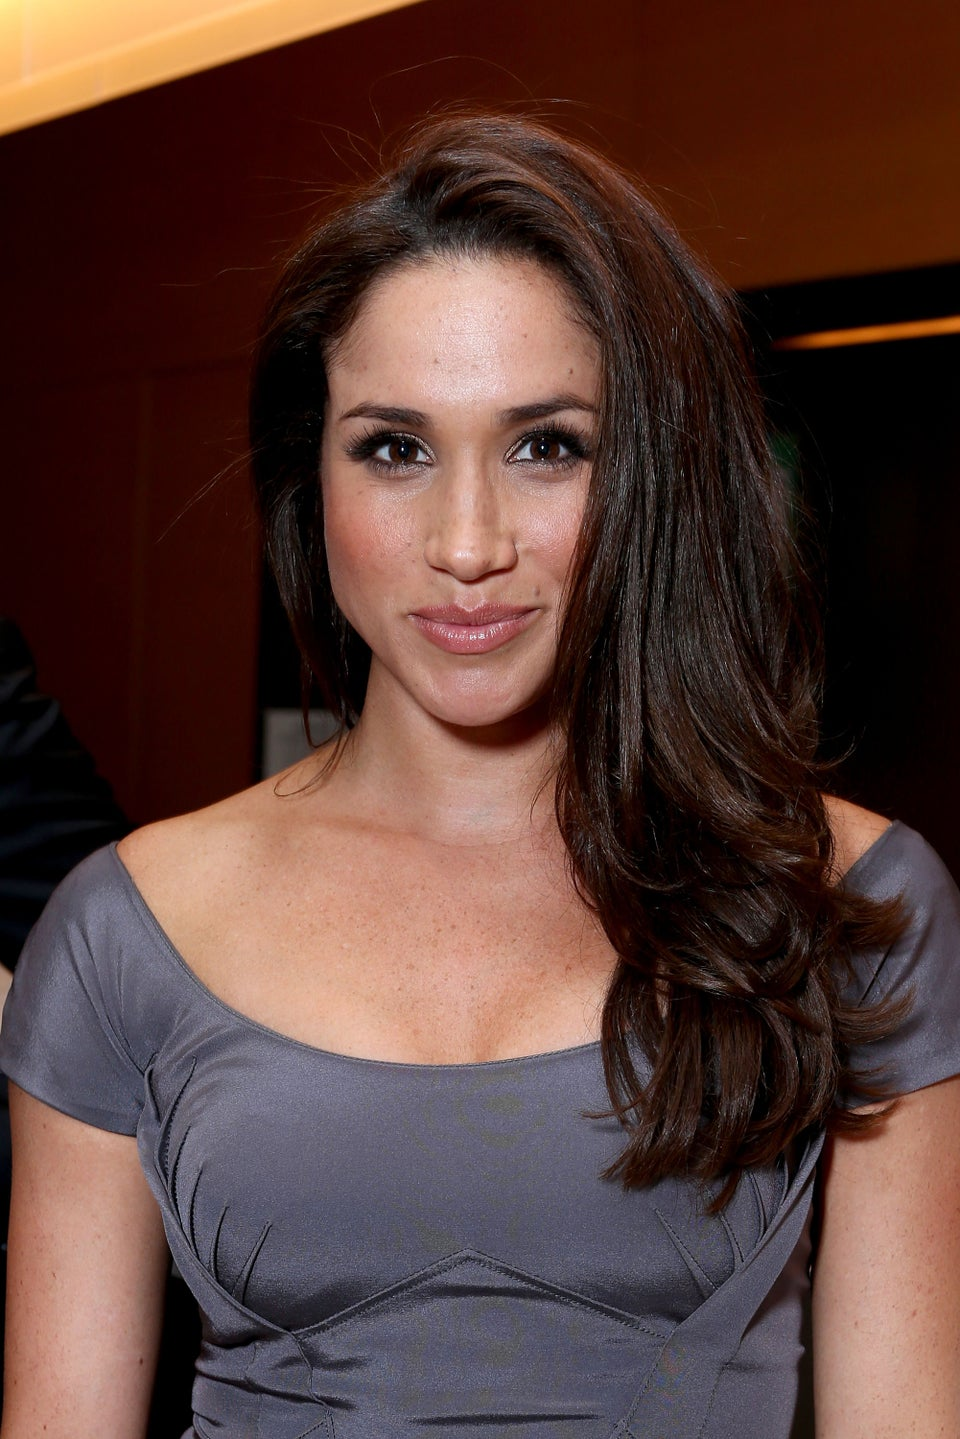 Meghan Markle Wears ESSENCE-Approved Handbag For First Royal Outing